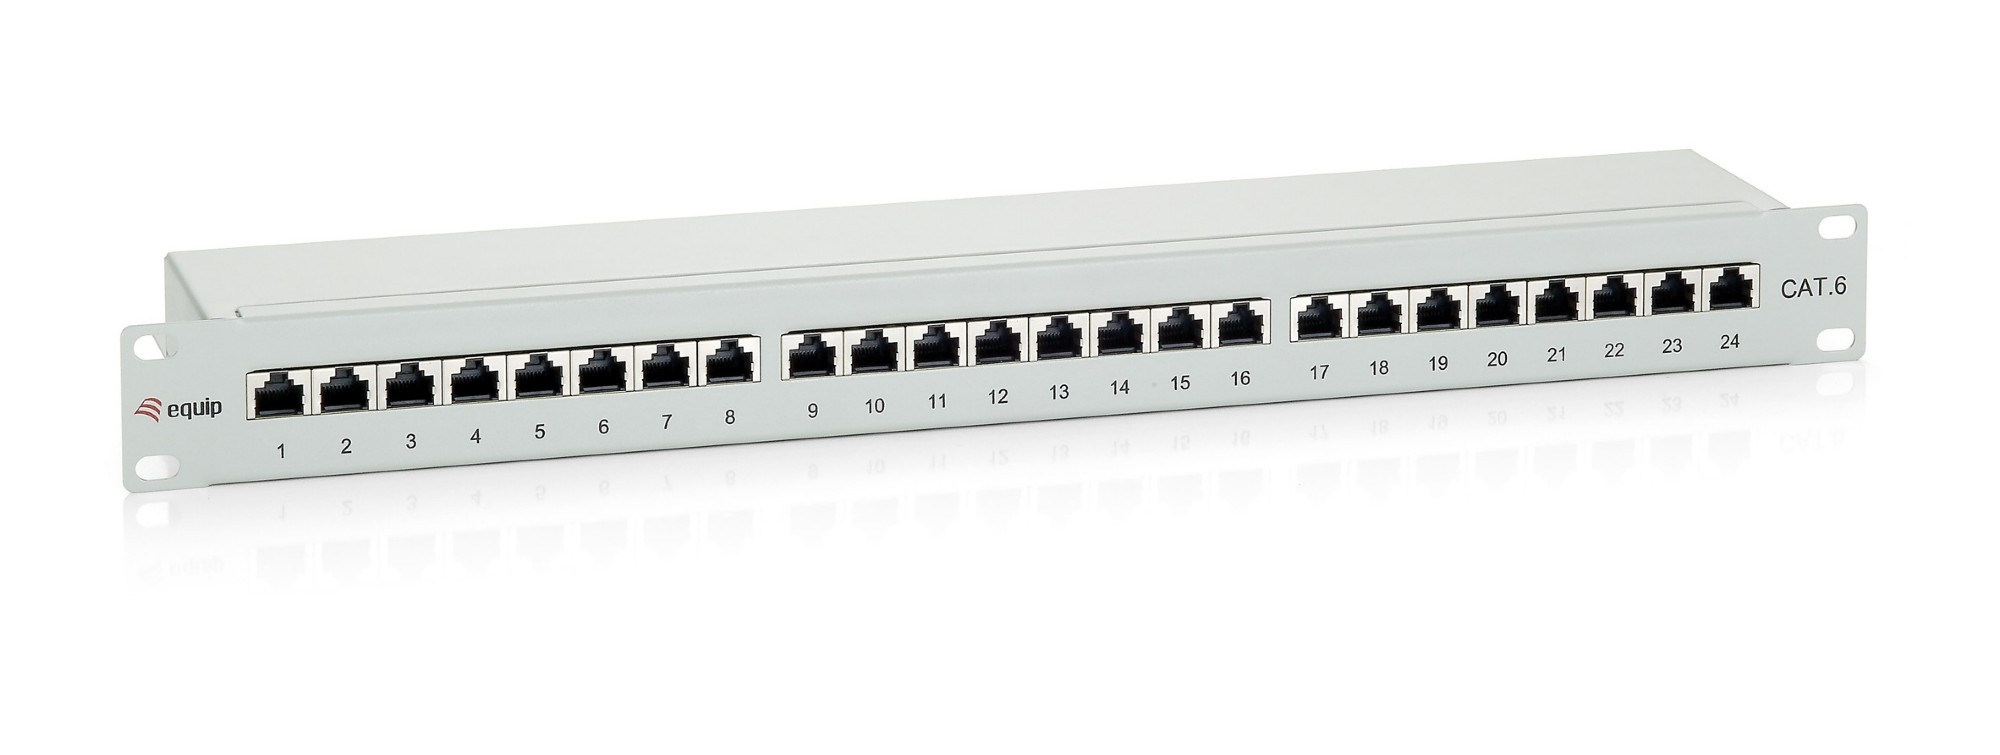 EQUIP 326324 24-PORT CAT.6 SHIELDED PATCH PANEL